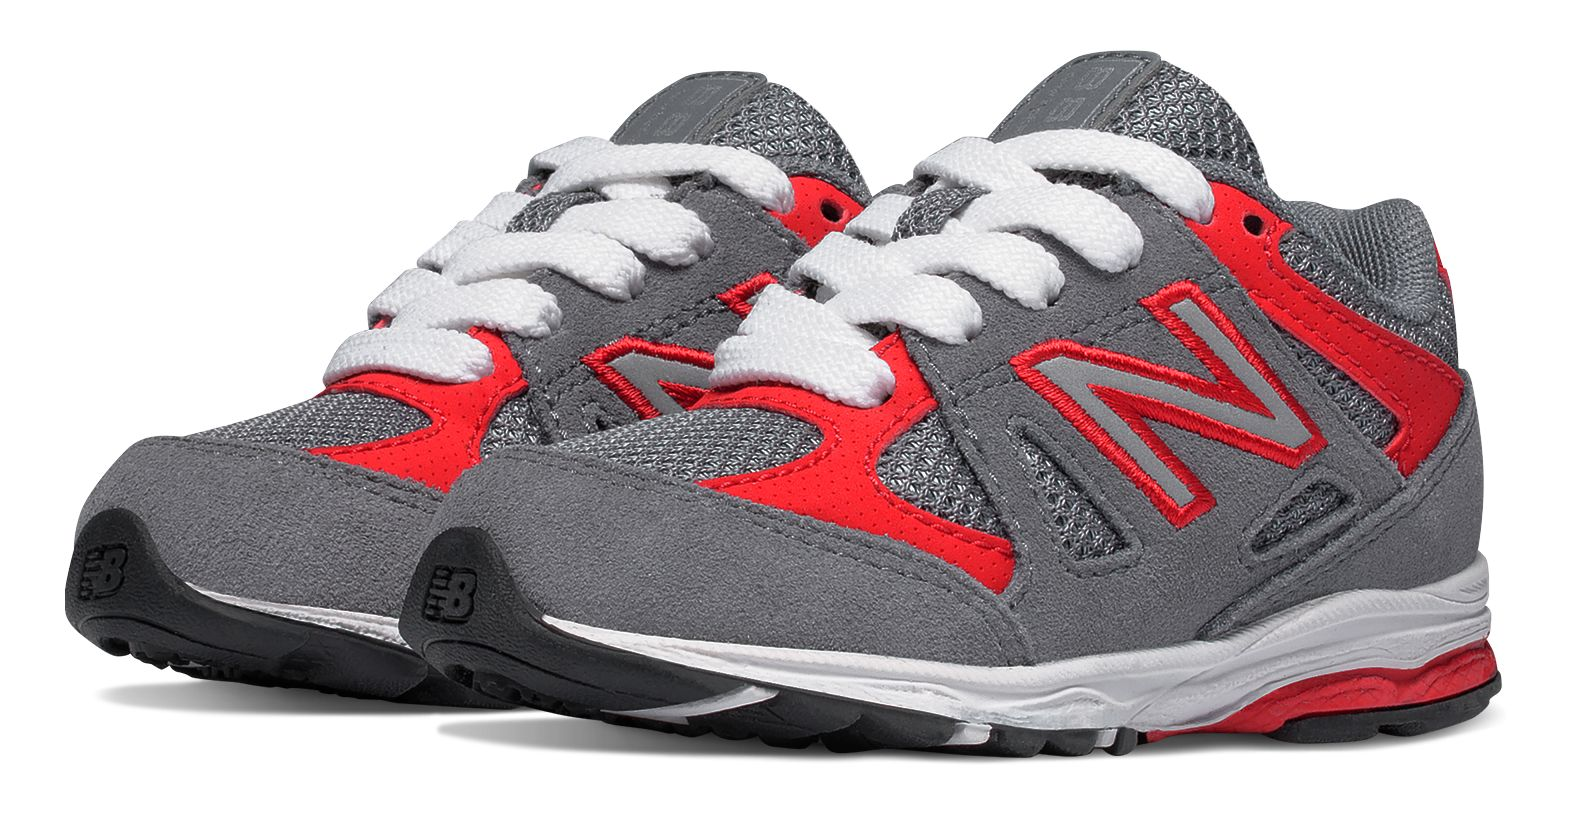 New Balance WT61509 on Sale - Discounts Up to 63% Off on WT61509SAH at Joe\u0027s  New Balance Outlet